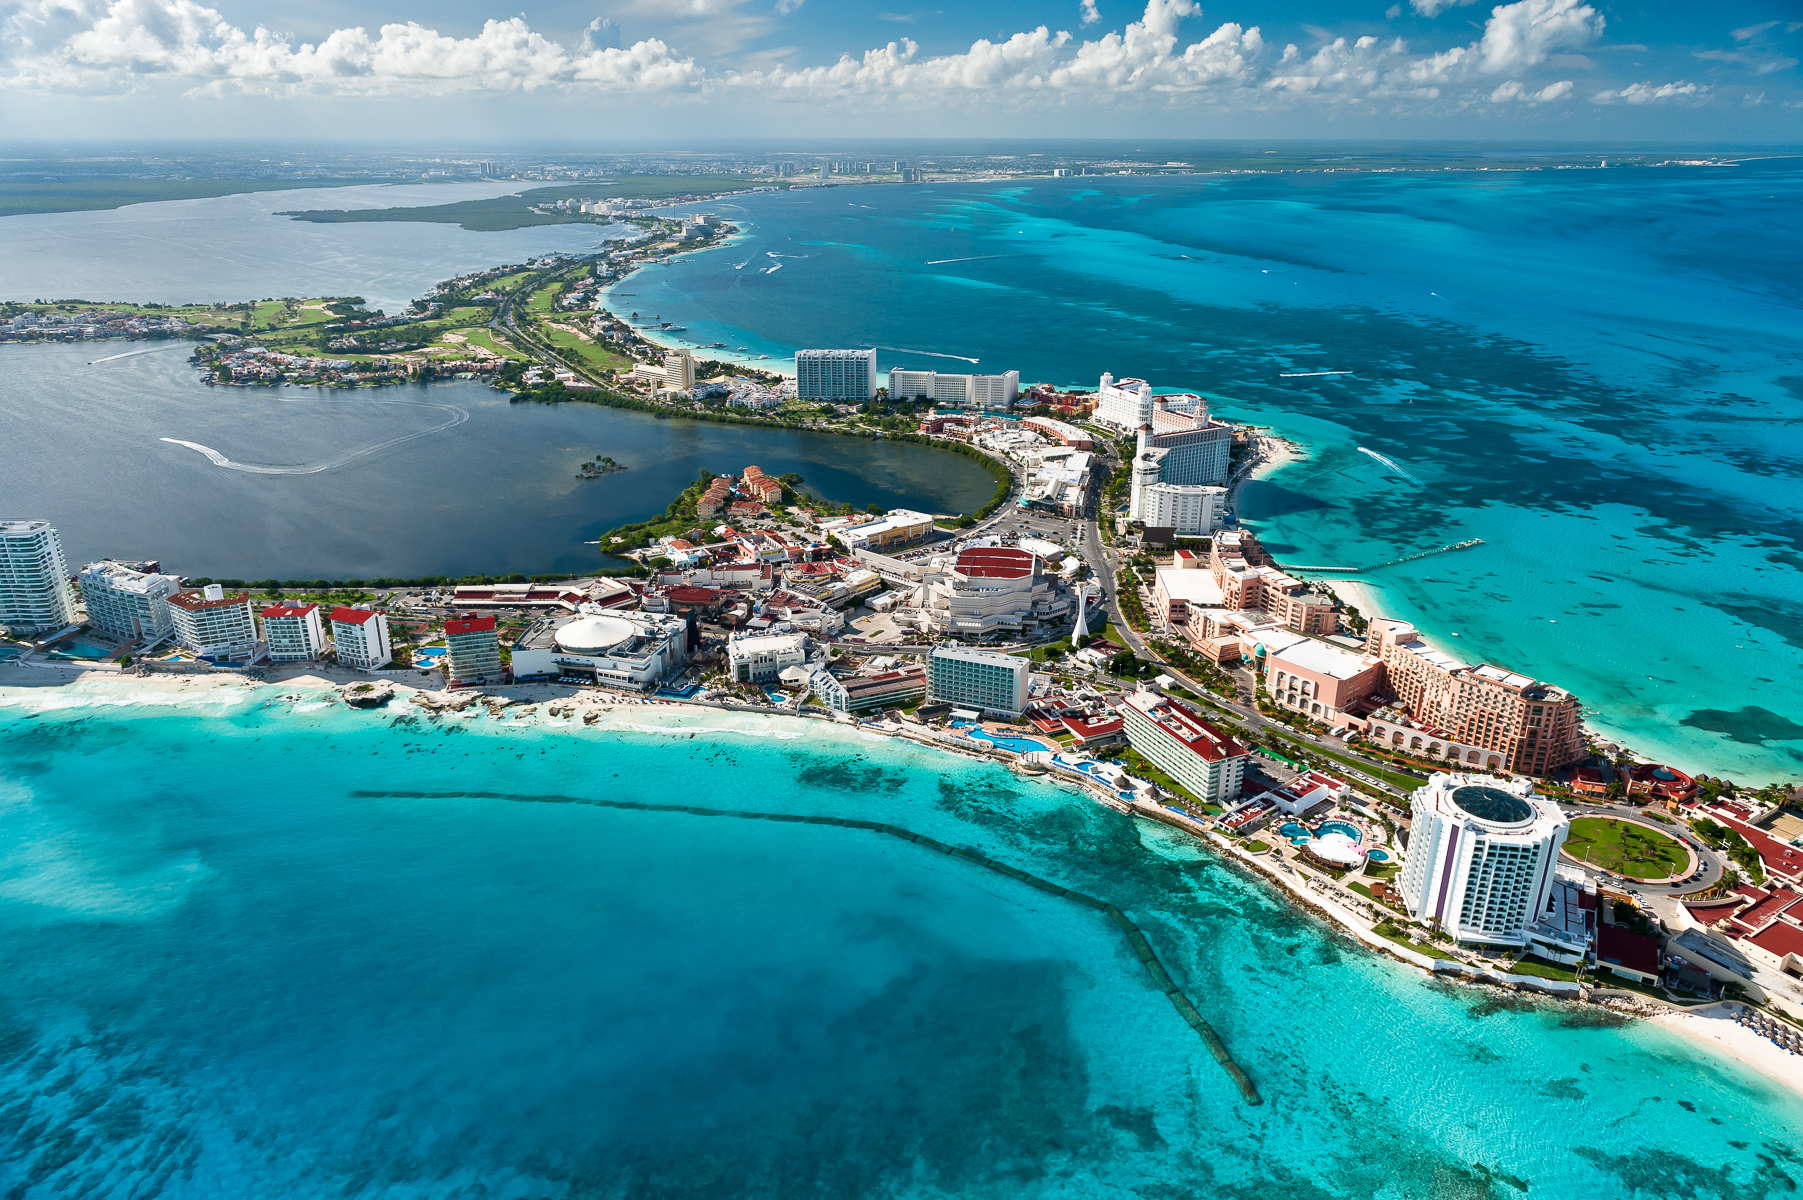 Yucatan iLCP {quote}RAVE.{quote} October 2010. Assignment: show impacts of tourism and development. Cancun showing density of development and proximity to coast. This contributes to erosion and loss of beach habitat.